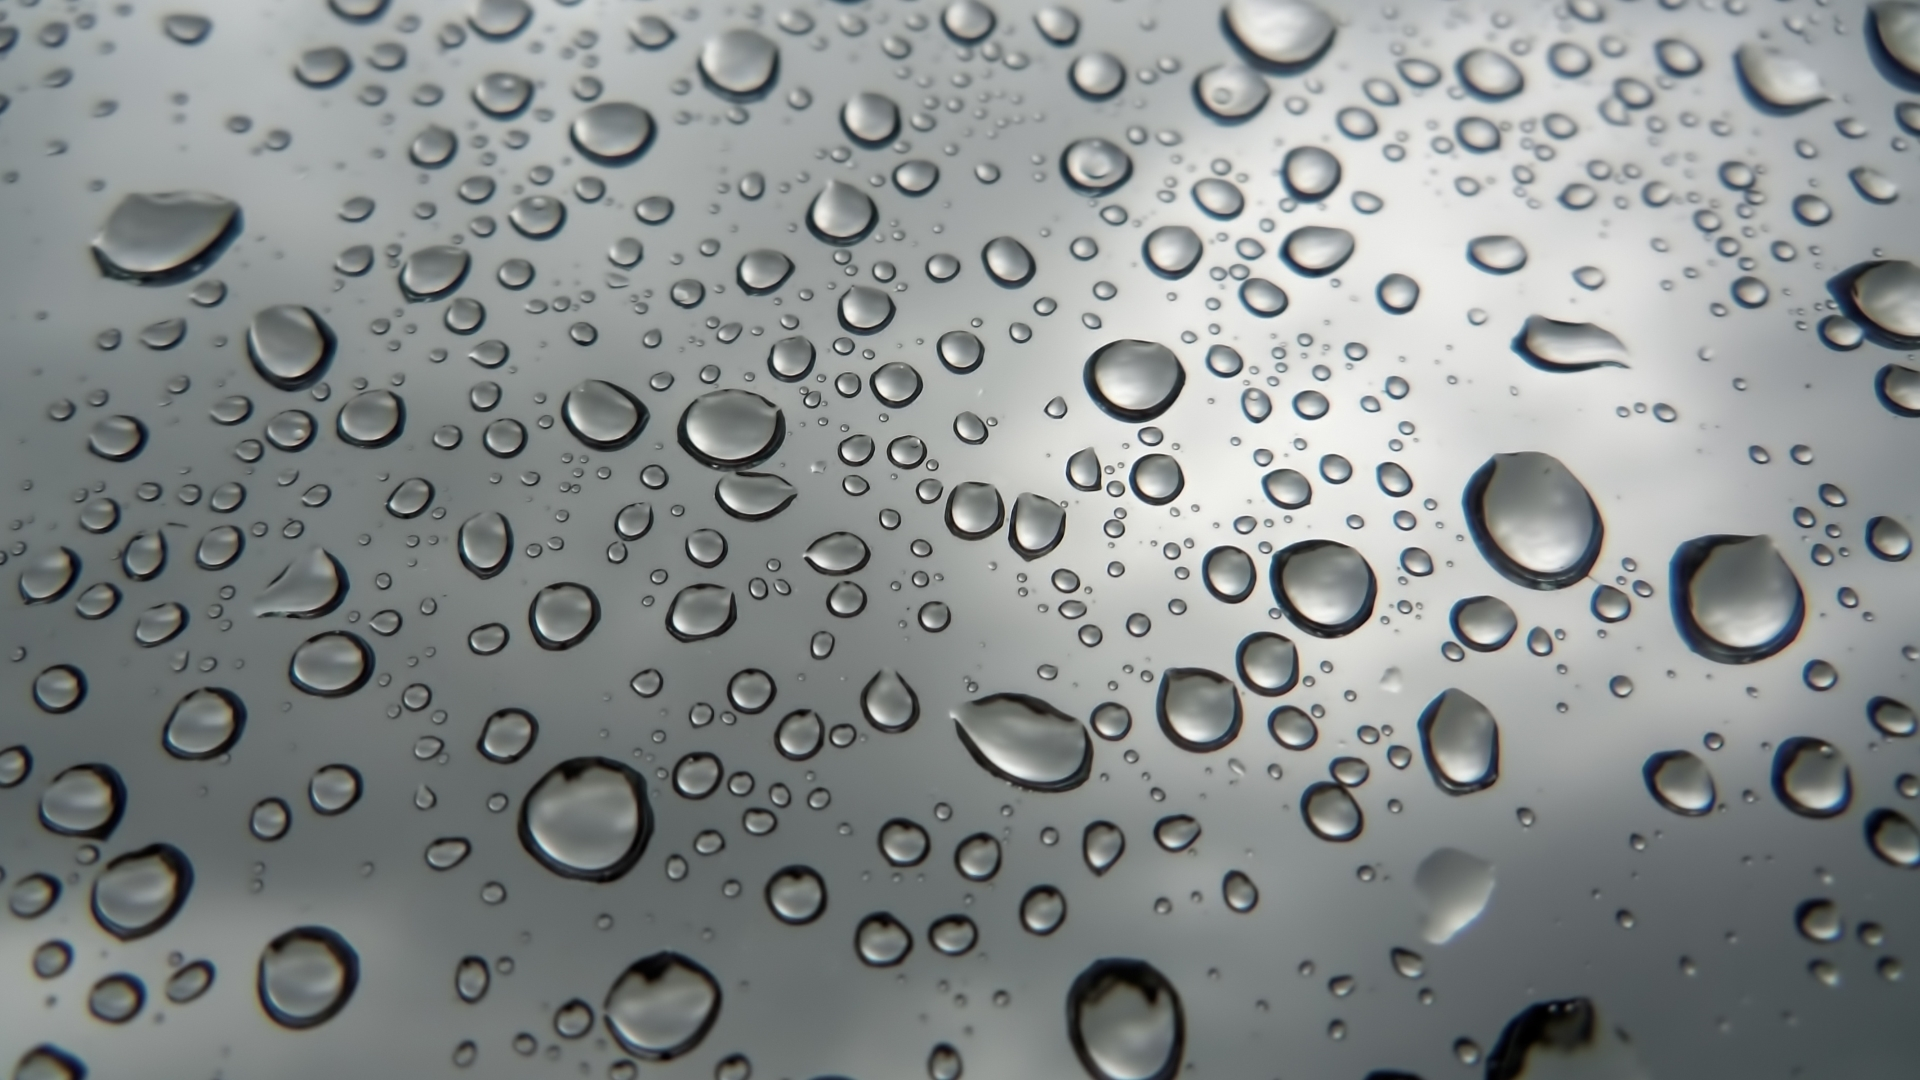 47 ] Raindrops Wallpaper For Windows 7 On WallpaperSafari